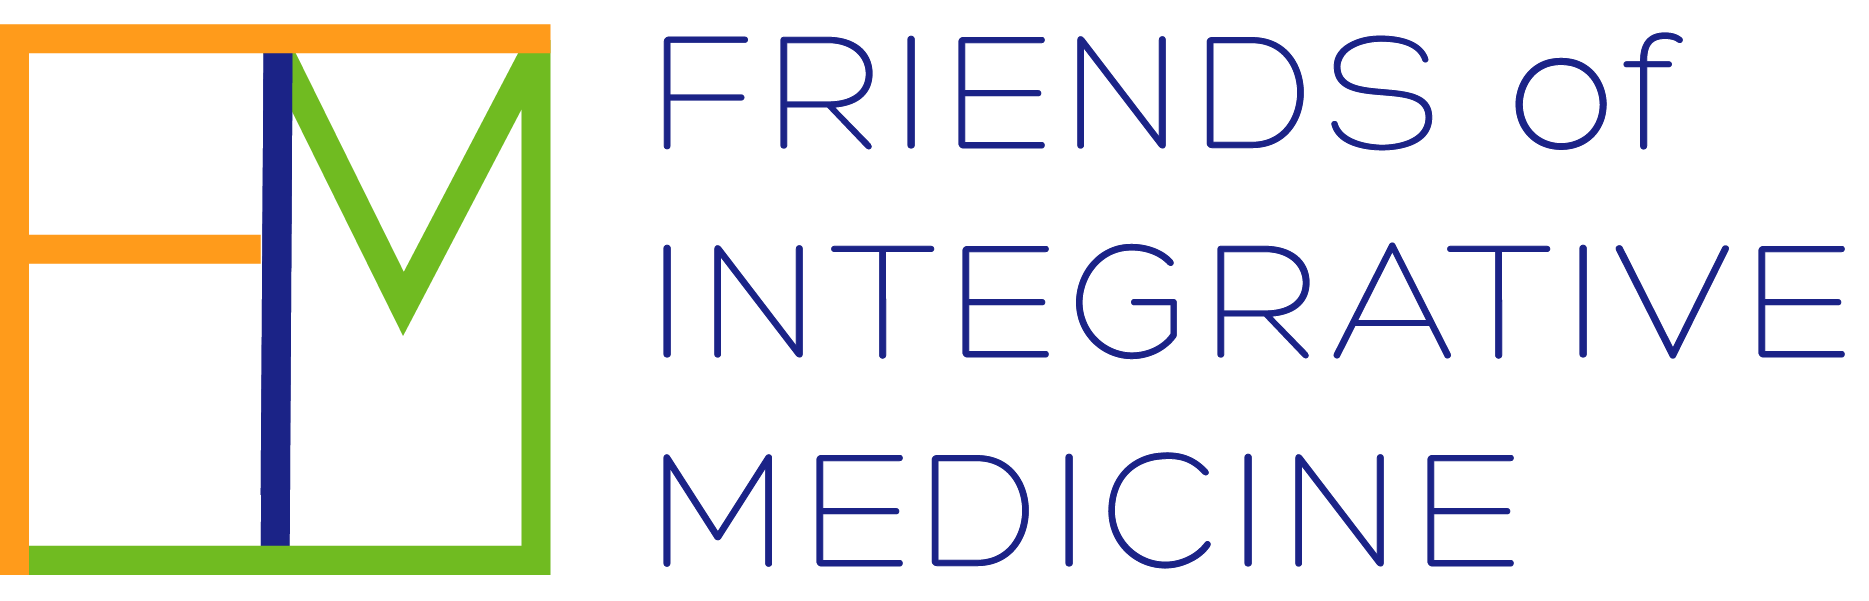 FIM Friends of Integrative Medicine at MD Anderson